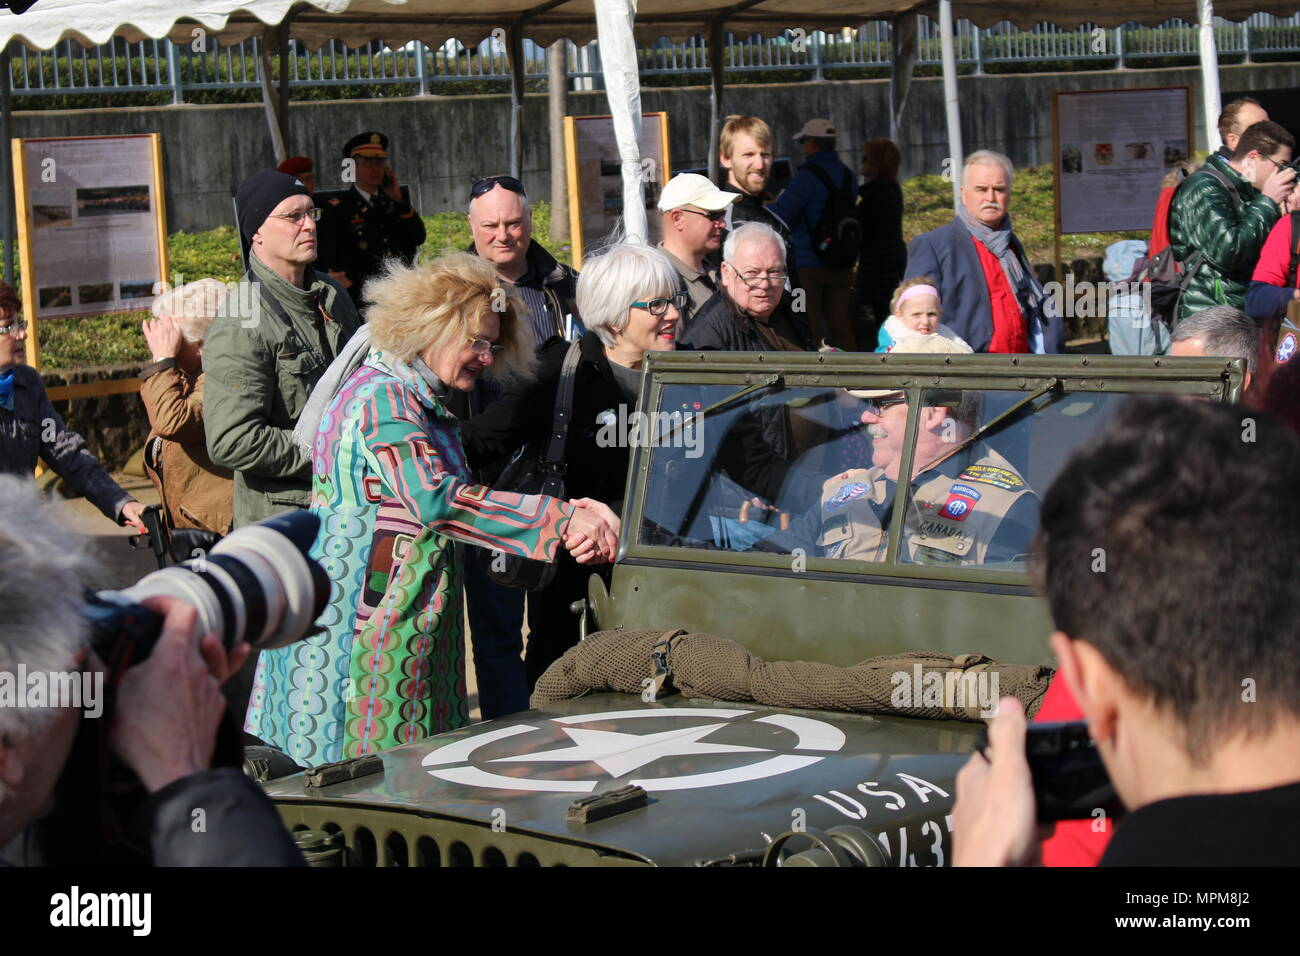 Catherine Rommel, left, the granddaughter of German Field Marshall Erwin Rommel, and Helen Patton, the granddaughter of U.S. Army Gen. George Patton, greet reenactors along the Rhine River Saturday, March 24, 2017 in Nierstein Germany. Americans and Germans gathered for the dedication ceremony for a monument to the 249th Engineer Combat Battalion's efforts at the end of World War II, building a bridge across the river near Nierstein during an operation that helped shorten the war.  (Photo by Lt. Col. Jefferson Wolfe) - Stock Image